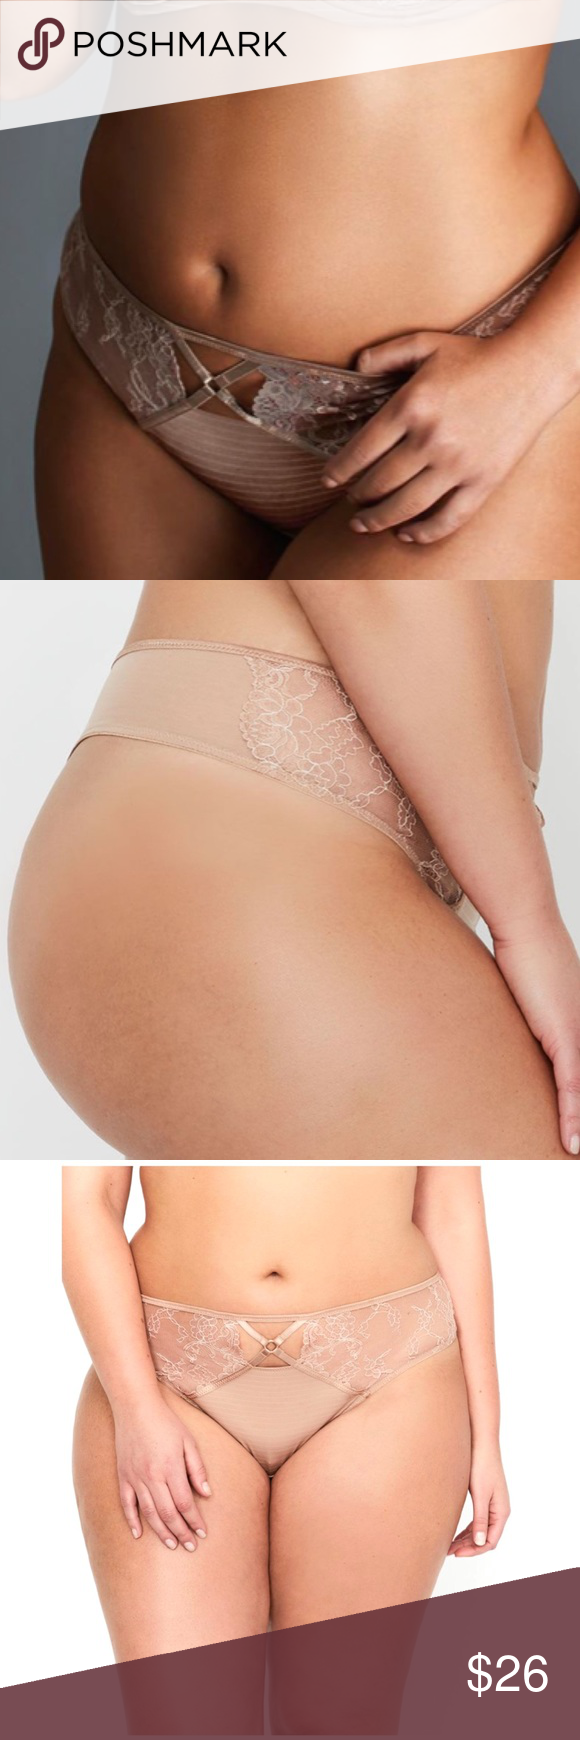 297299f88e3437 Ashley Graham Essentials Lace & Striped Thong This discrete yet seductive  plus size thong from the